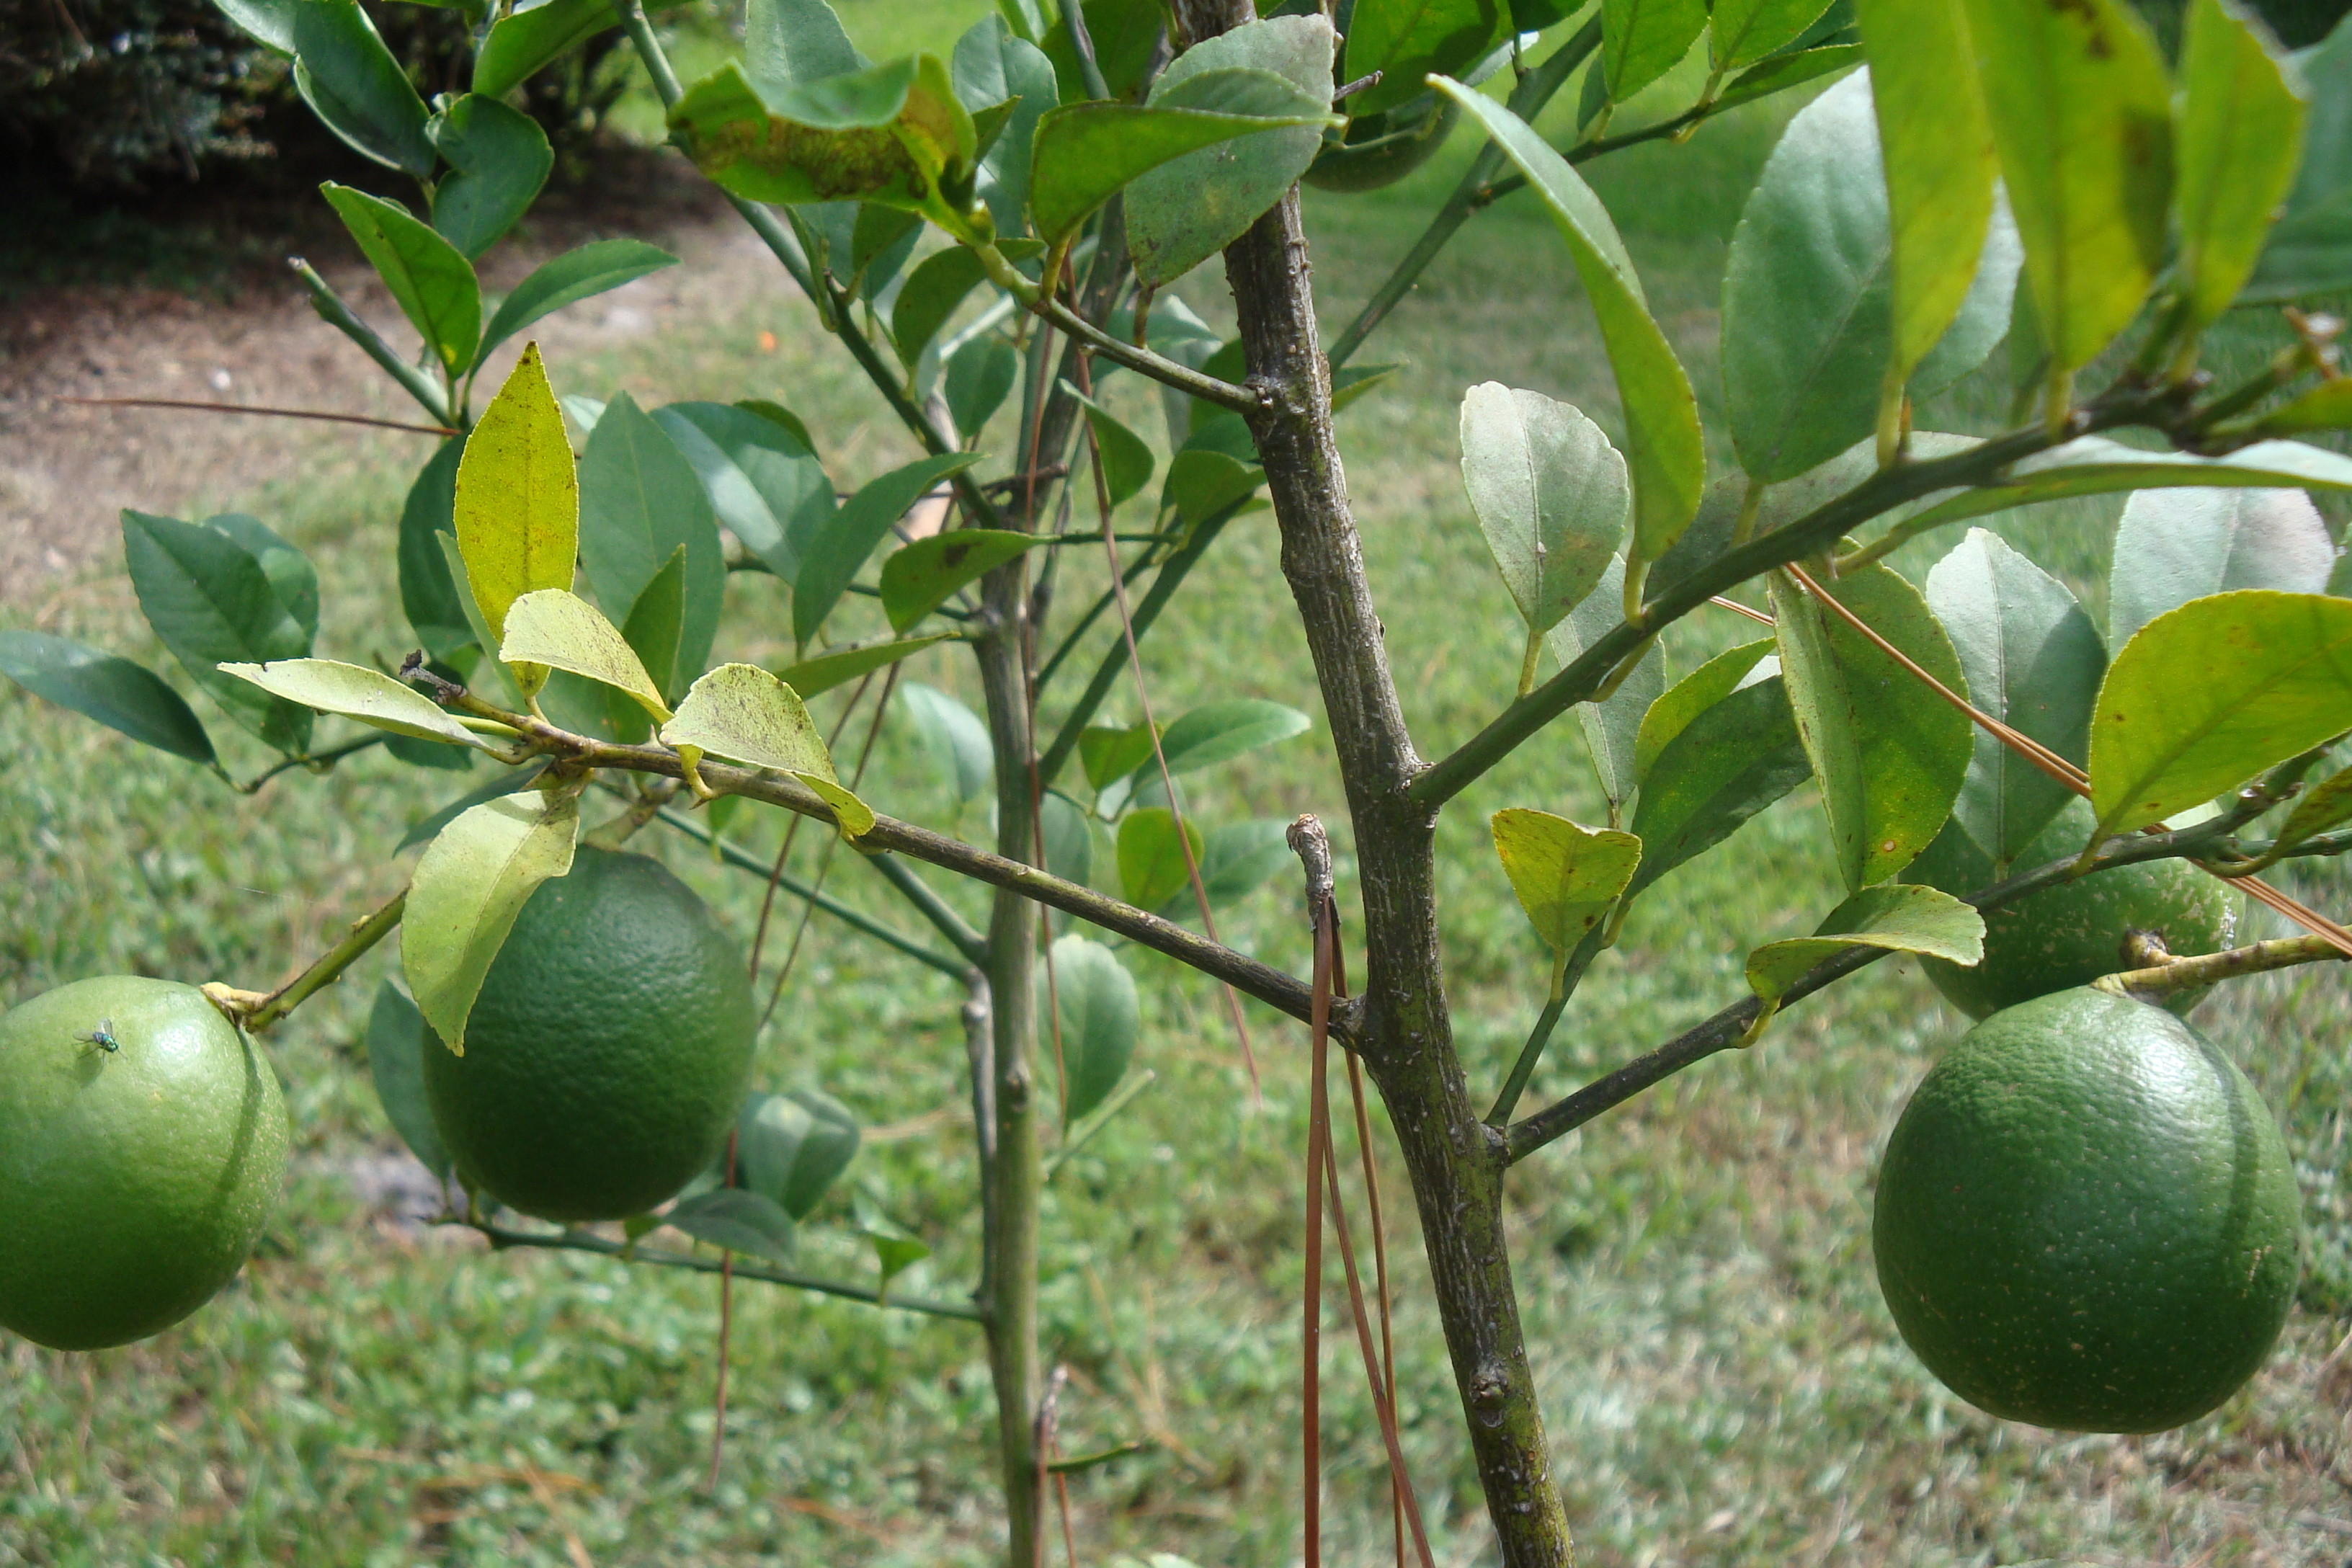 Lemon trees problems garden guides for What does a lemon tree seedling look like